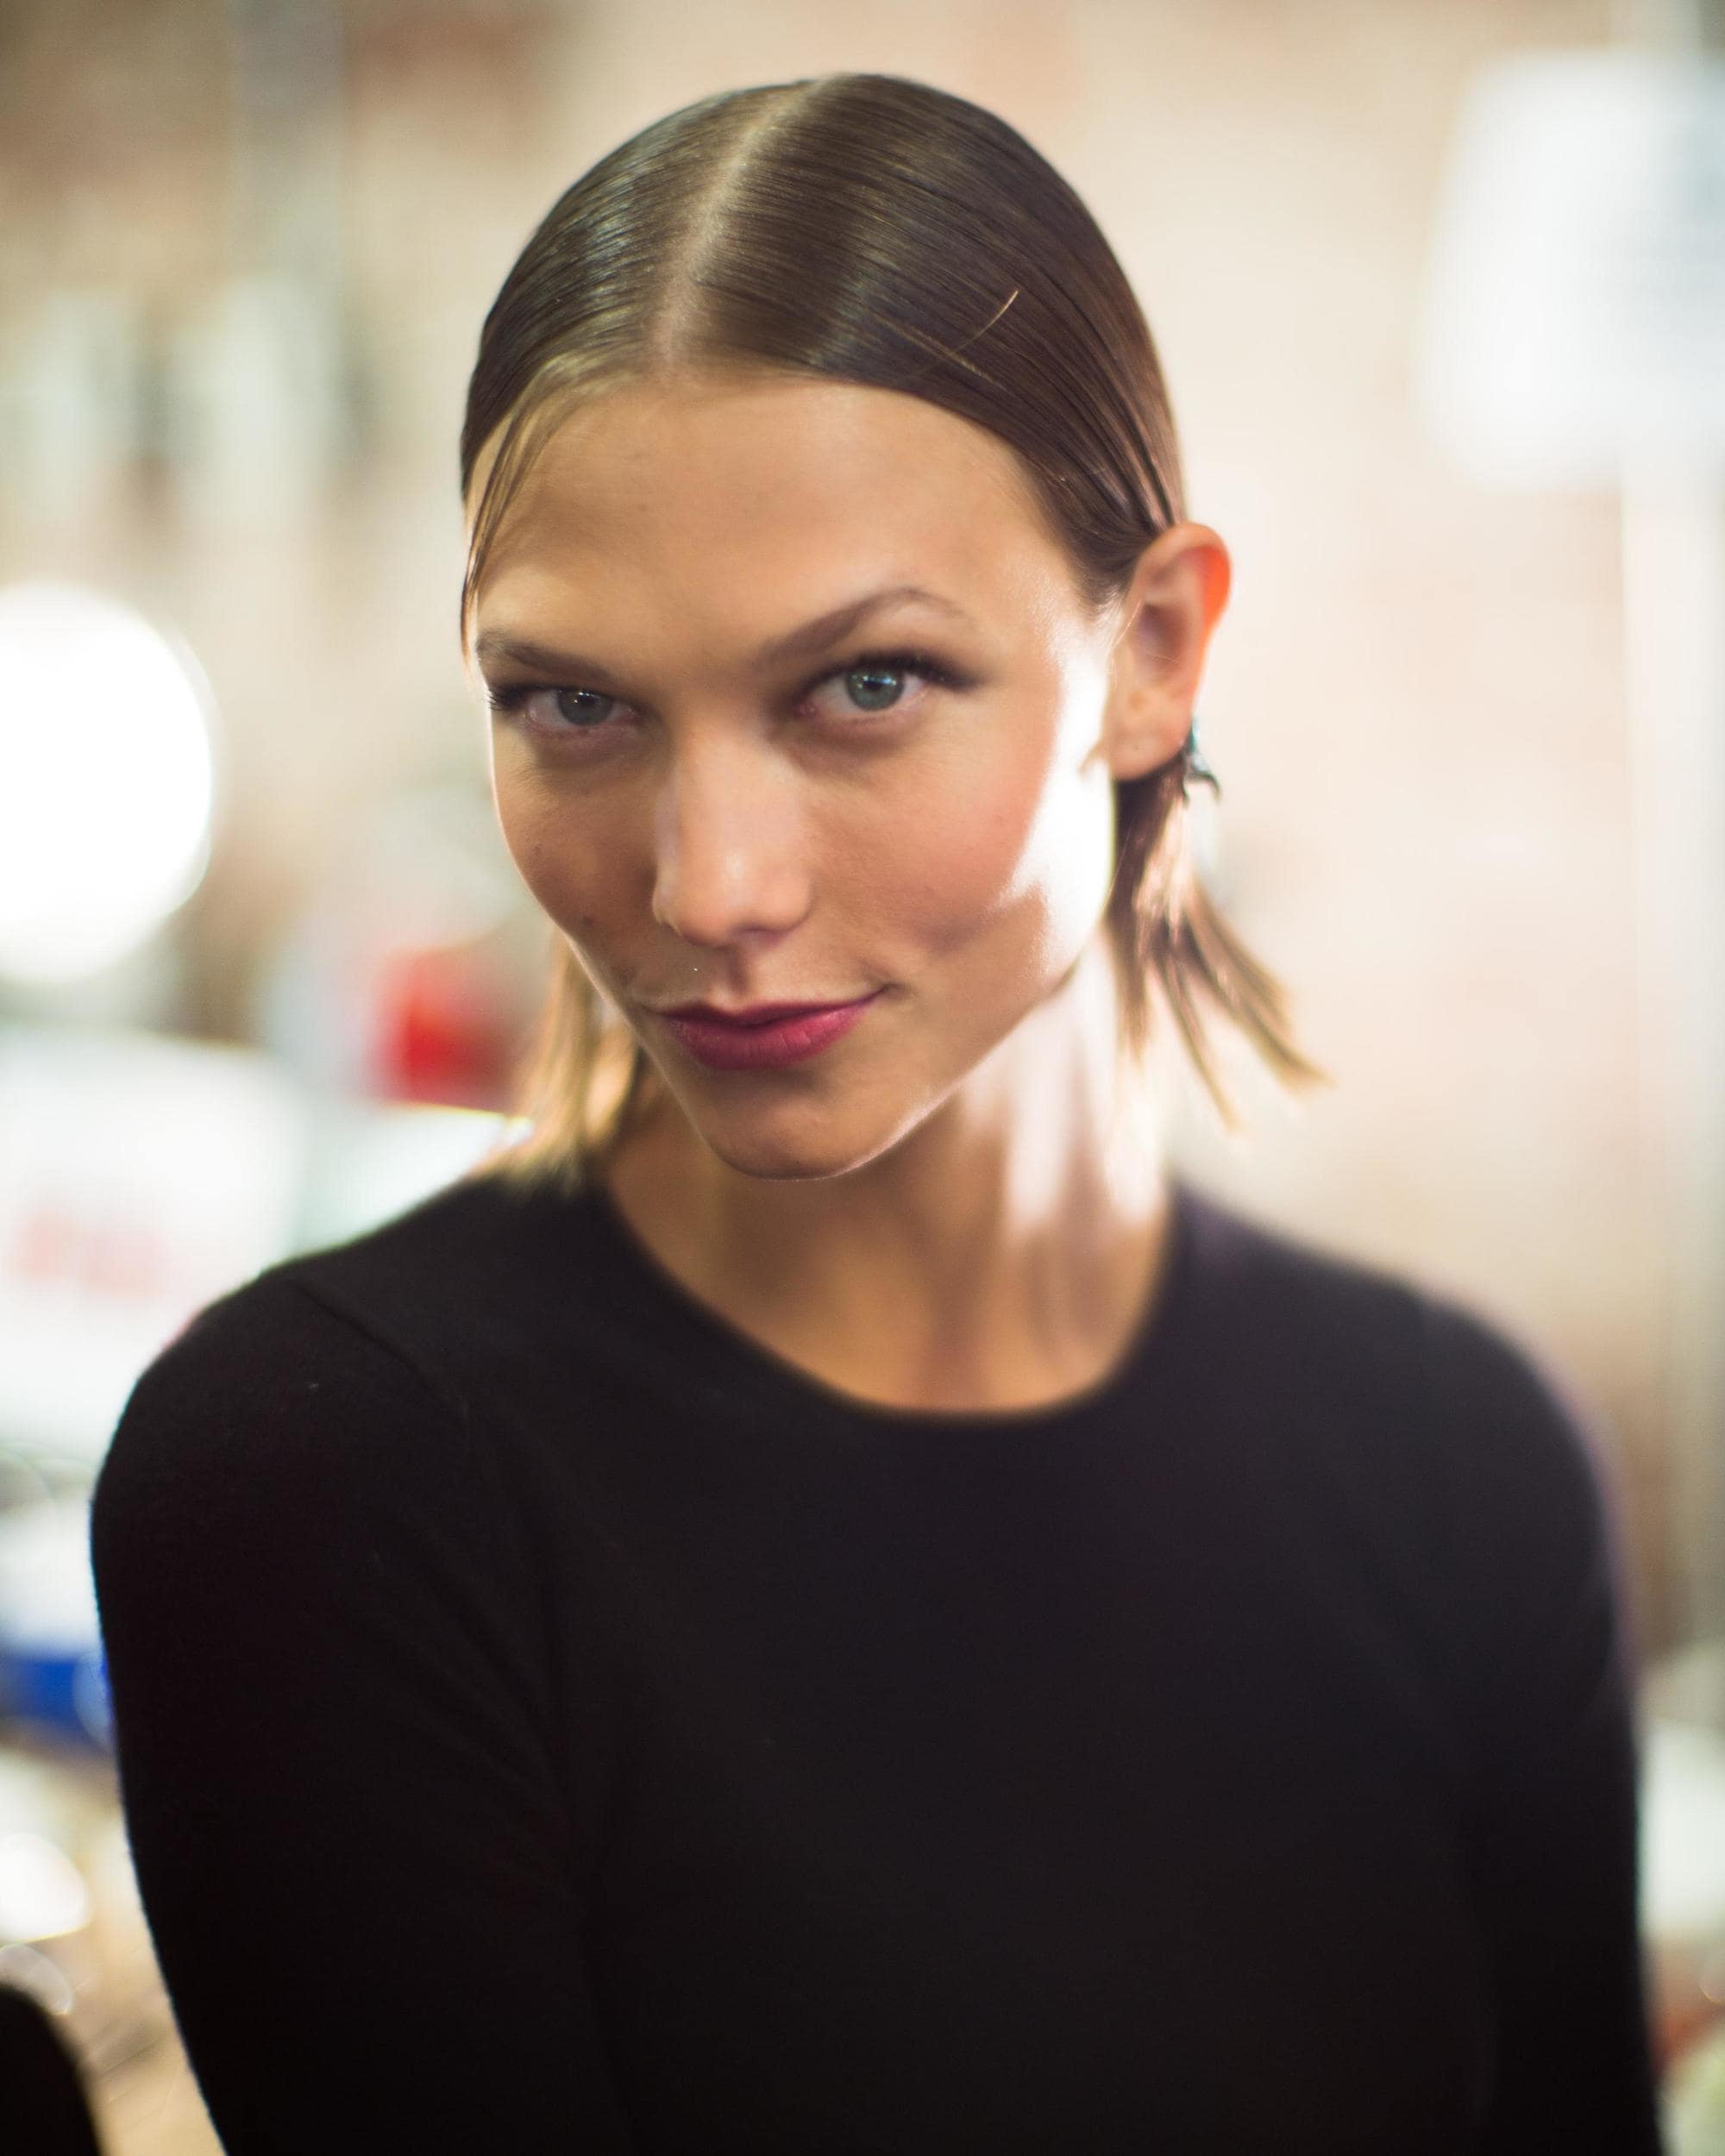 karlie kloss backstage at jason wu spring 2014 runway show with blonde bob hair in middle parting wet look style